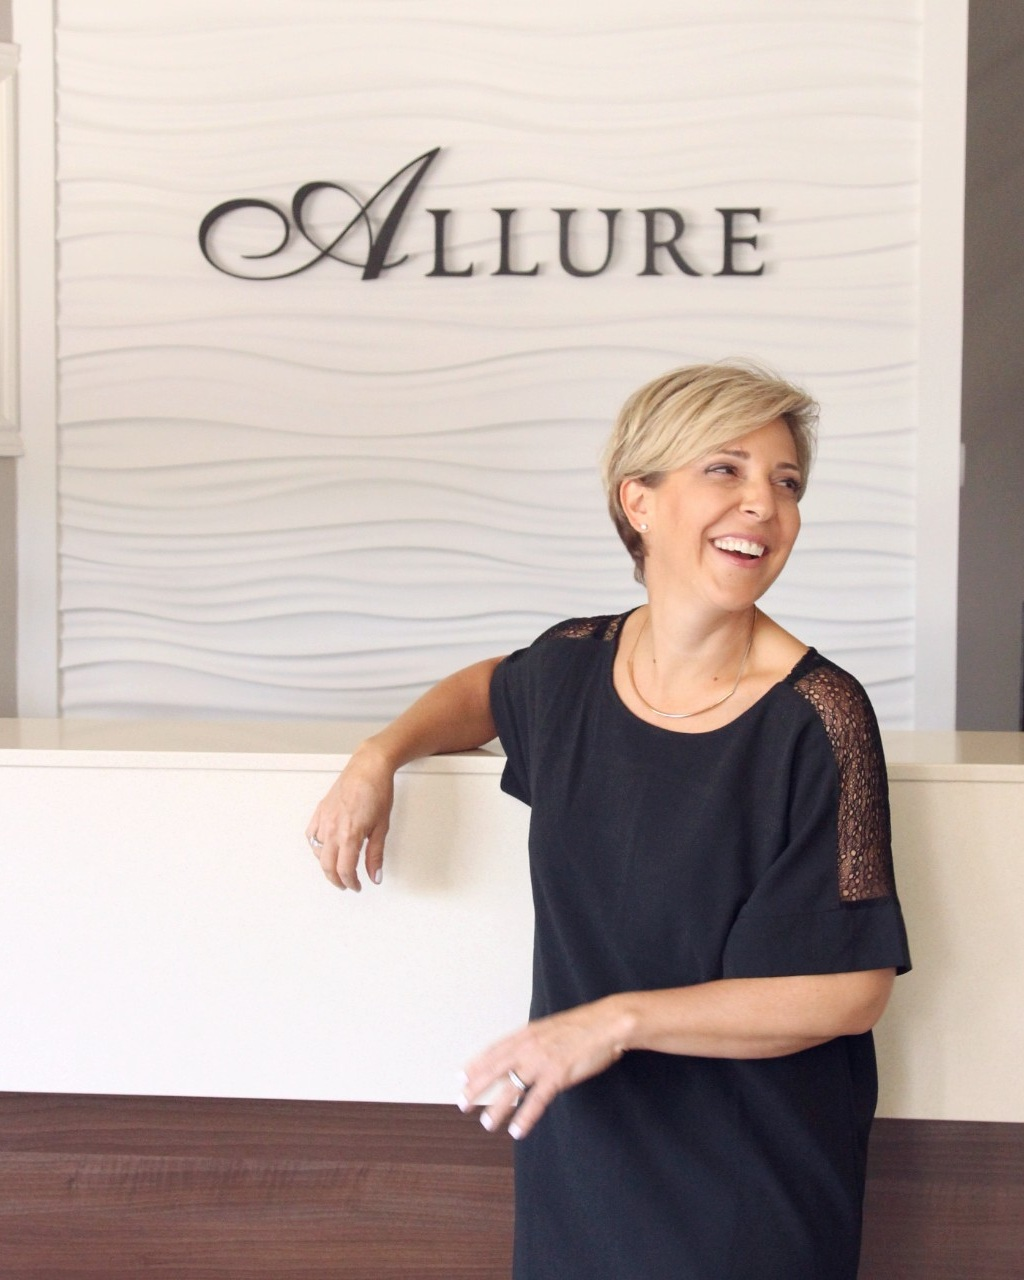 Paola Agostini - Meet Paola, our not so big boss lady! 17 years ago Paola, and her family decided to build a brand with a focus on luxury, quality, and sophistication. The Agostini's took one of Manotick's heritage buildings, and transformed it into a house of style. Allure is a labour of love for Paola, and her commitment to providing the best in staff, service, and atmosphere never falters.